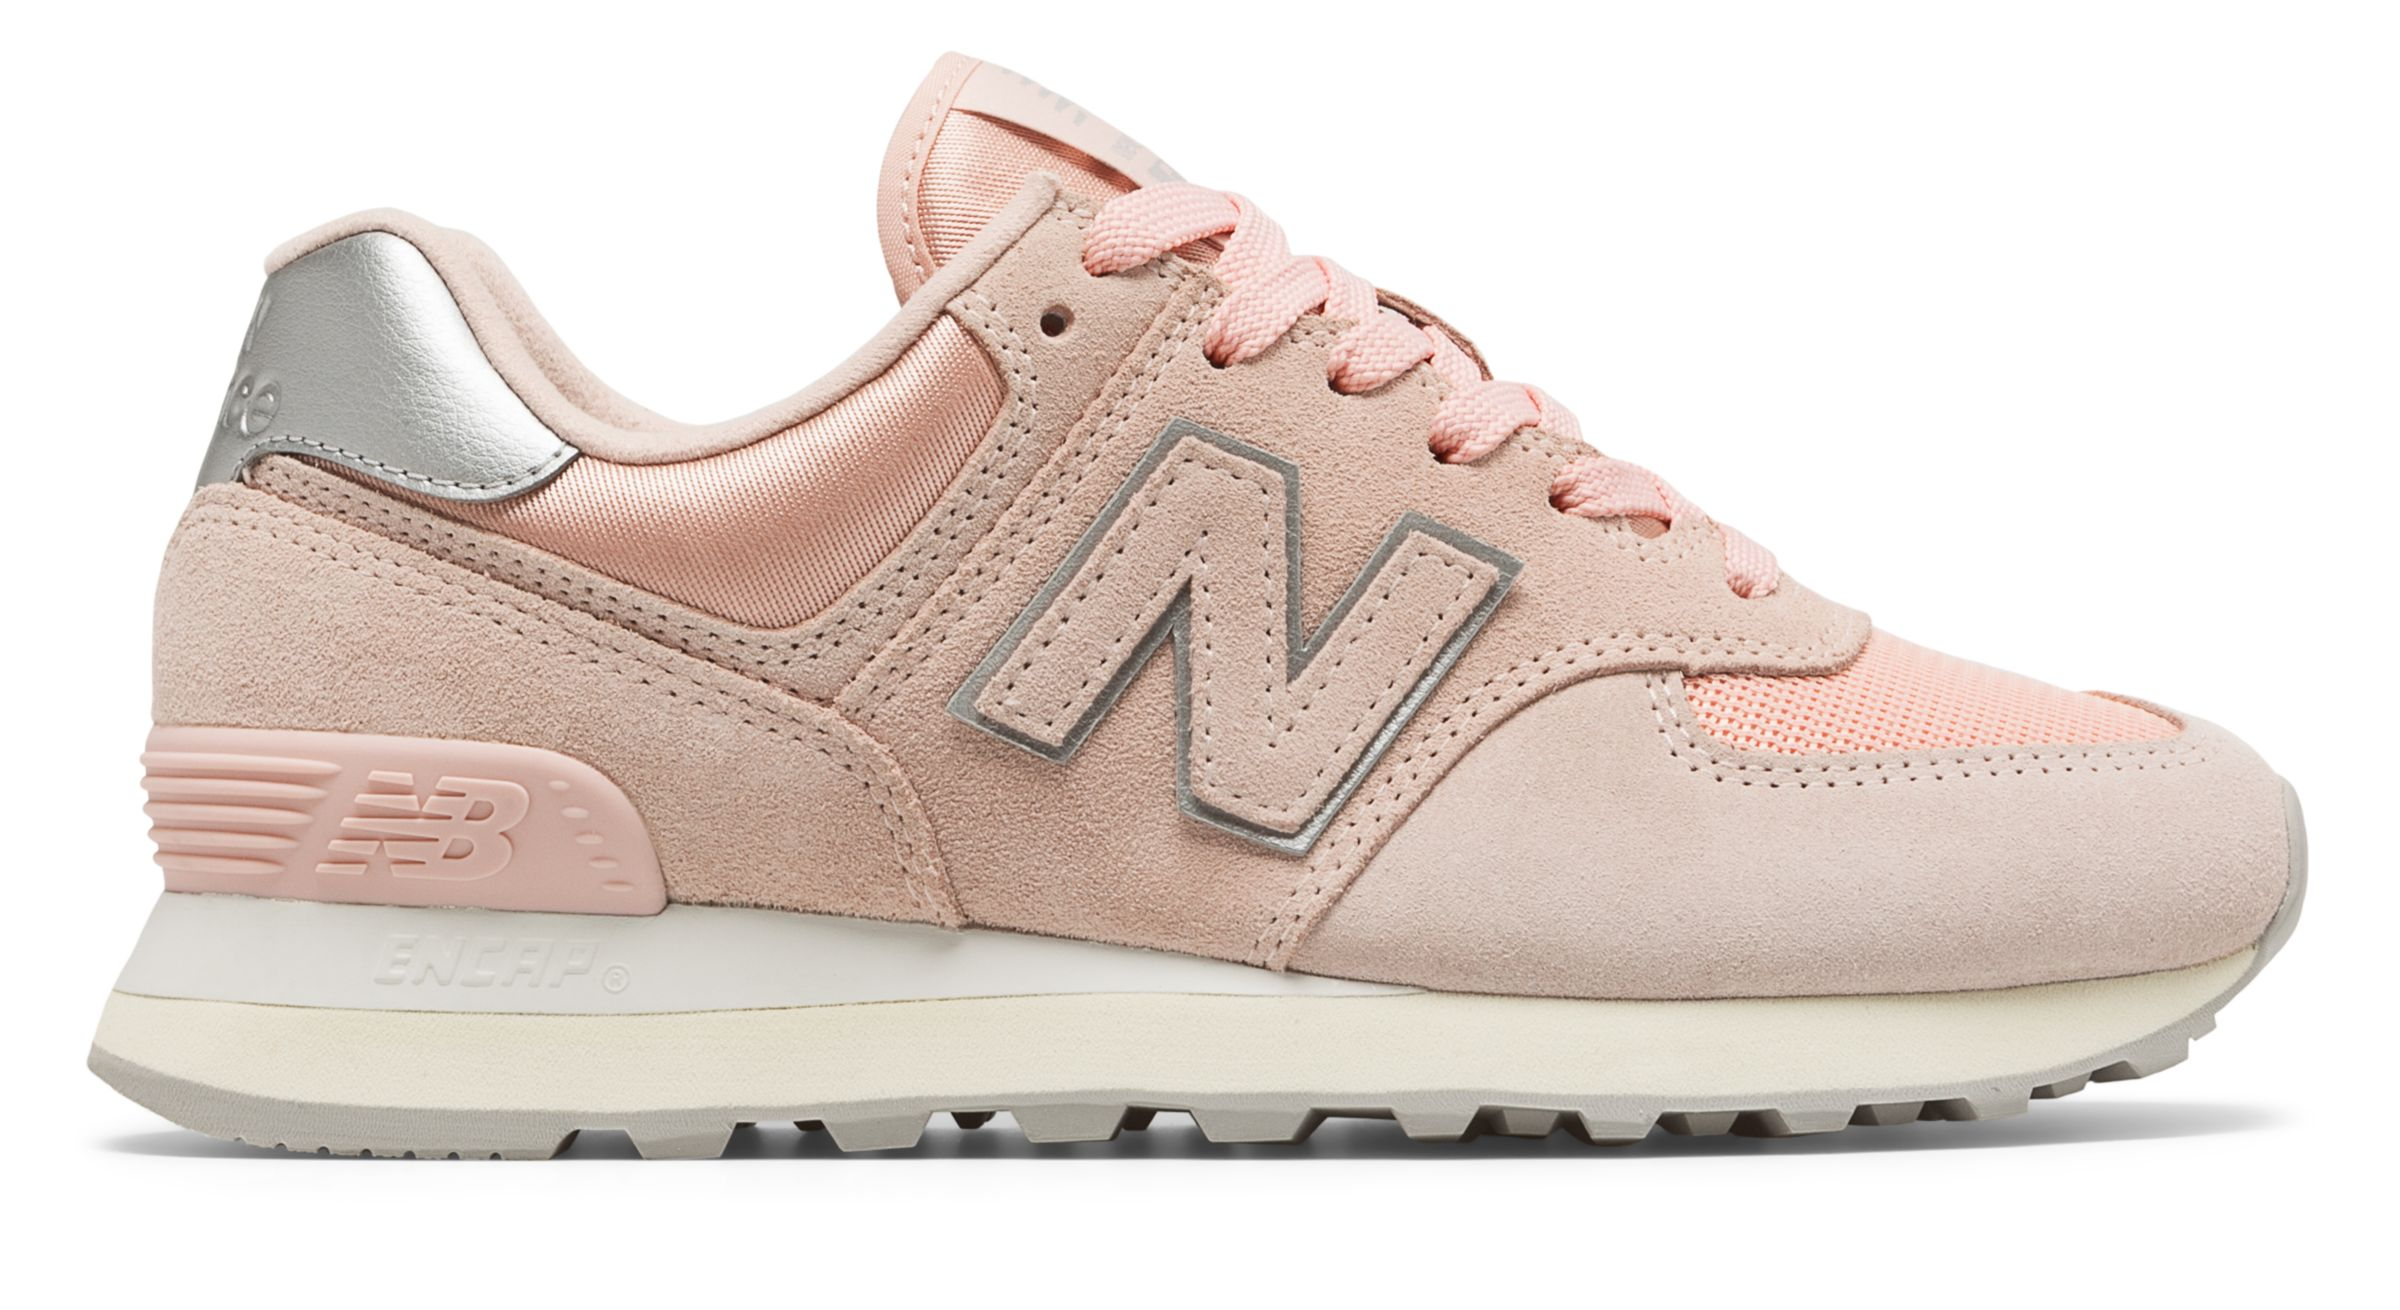 nouveaux styles 8c342 3d219 Details about New Balance Women's 574 Sateen Tab Shoes Pink With Silver